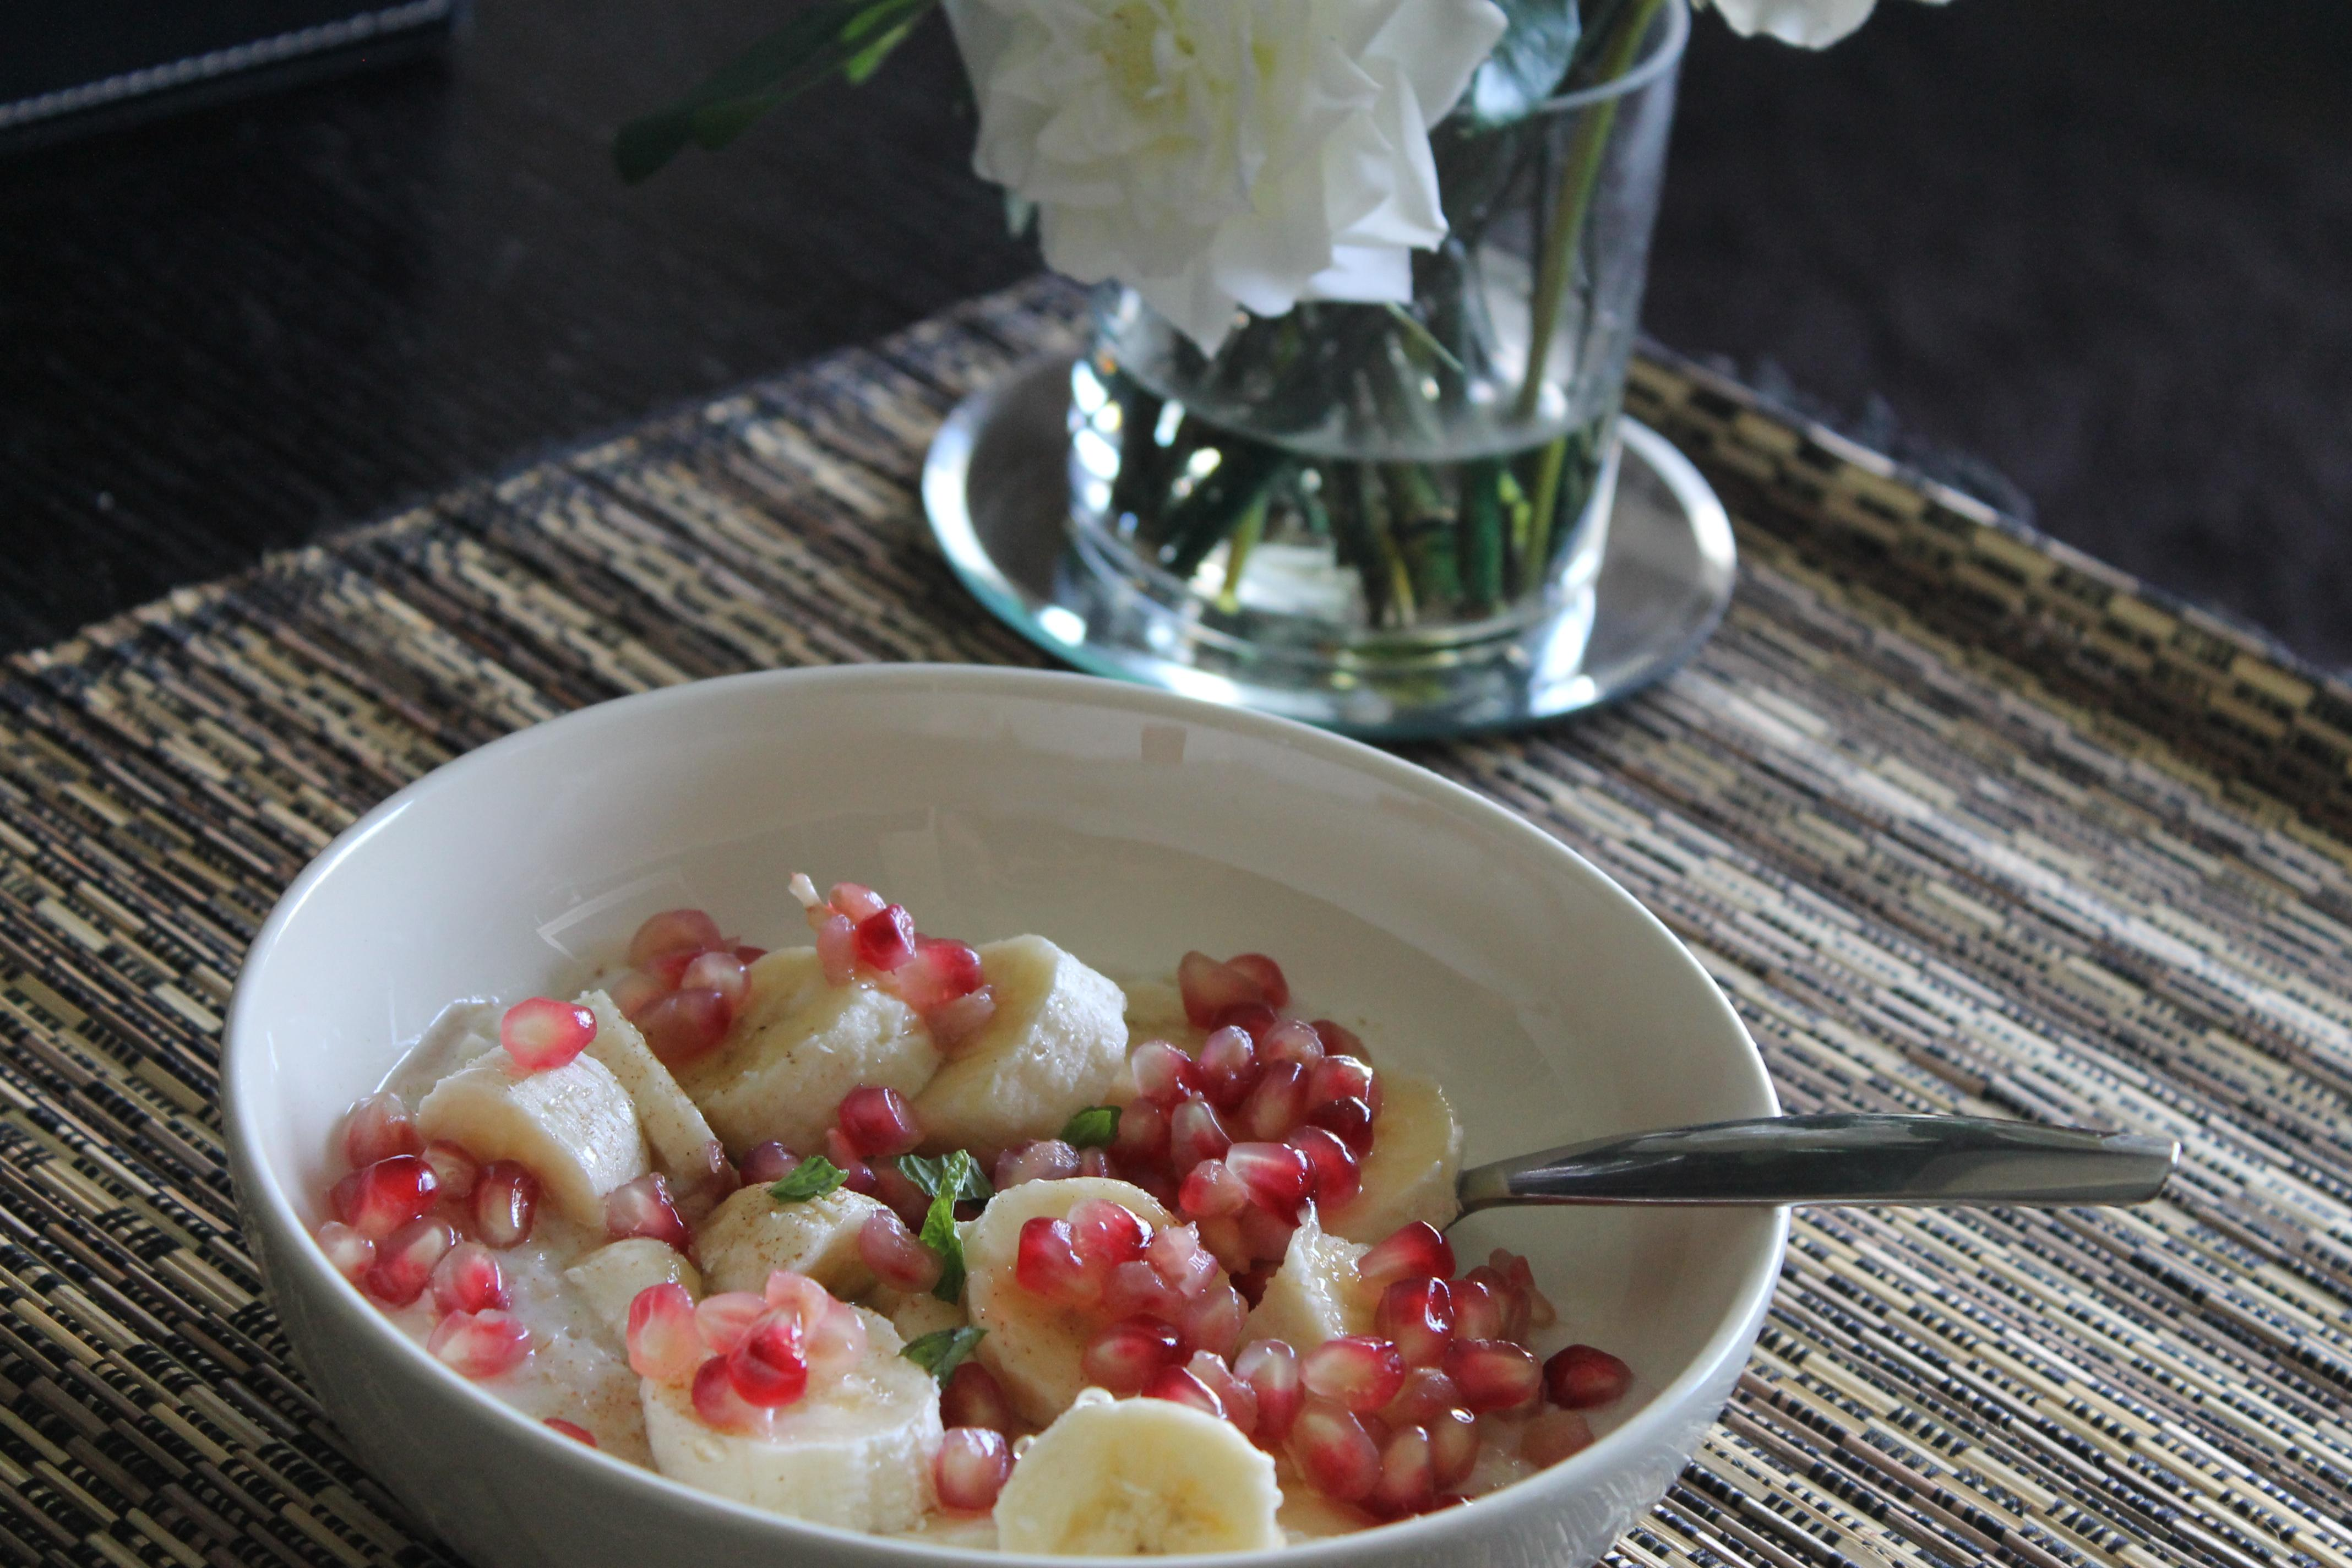 Morning Booster: Creamy Porridge with Fruits